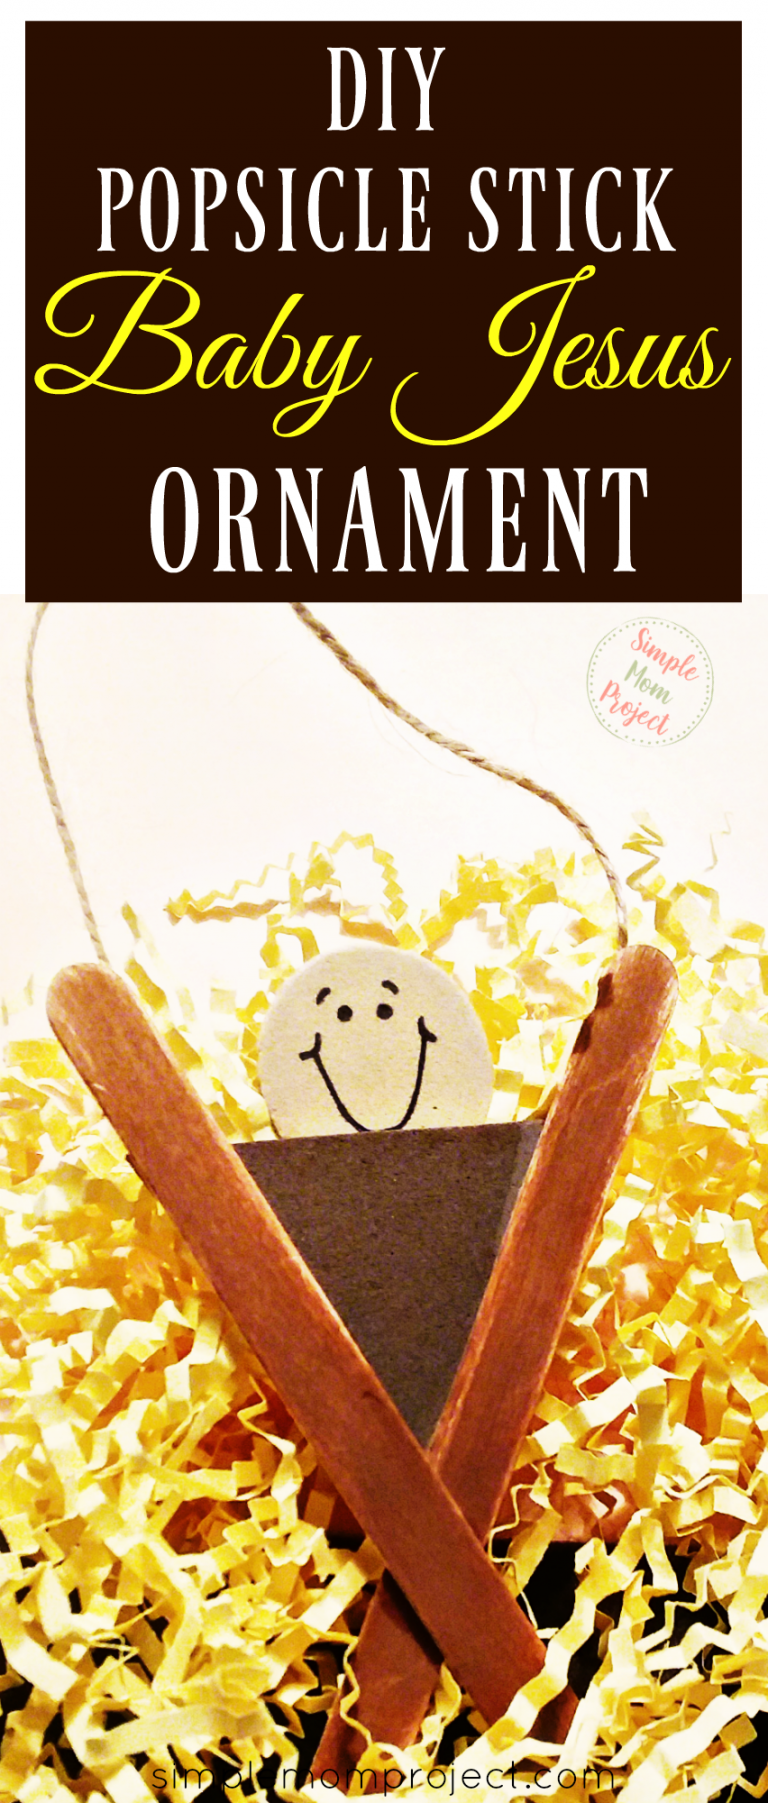 For an easy Christmas craft for kids, find out how to make your very own Popsicle stick Baby Jesus ornament. It is a wonderful holiday activity to share in Sunday school or a great gift idea.